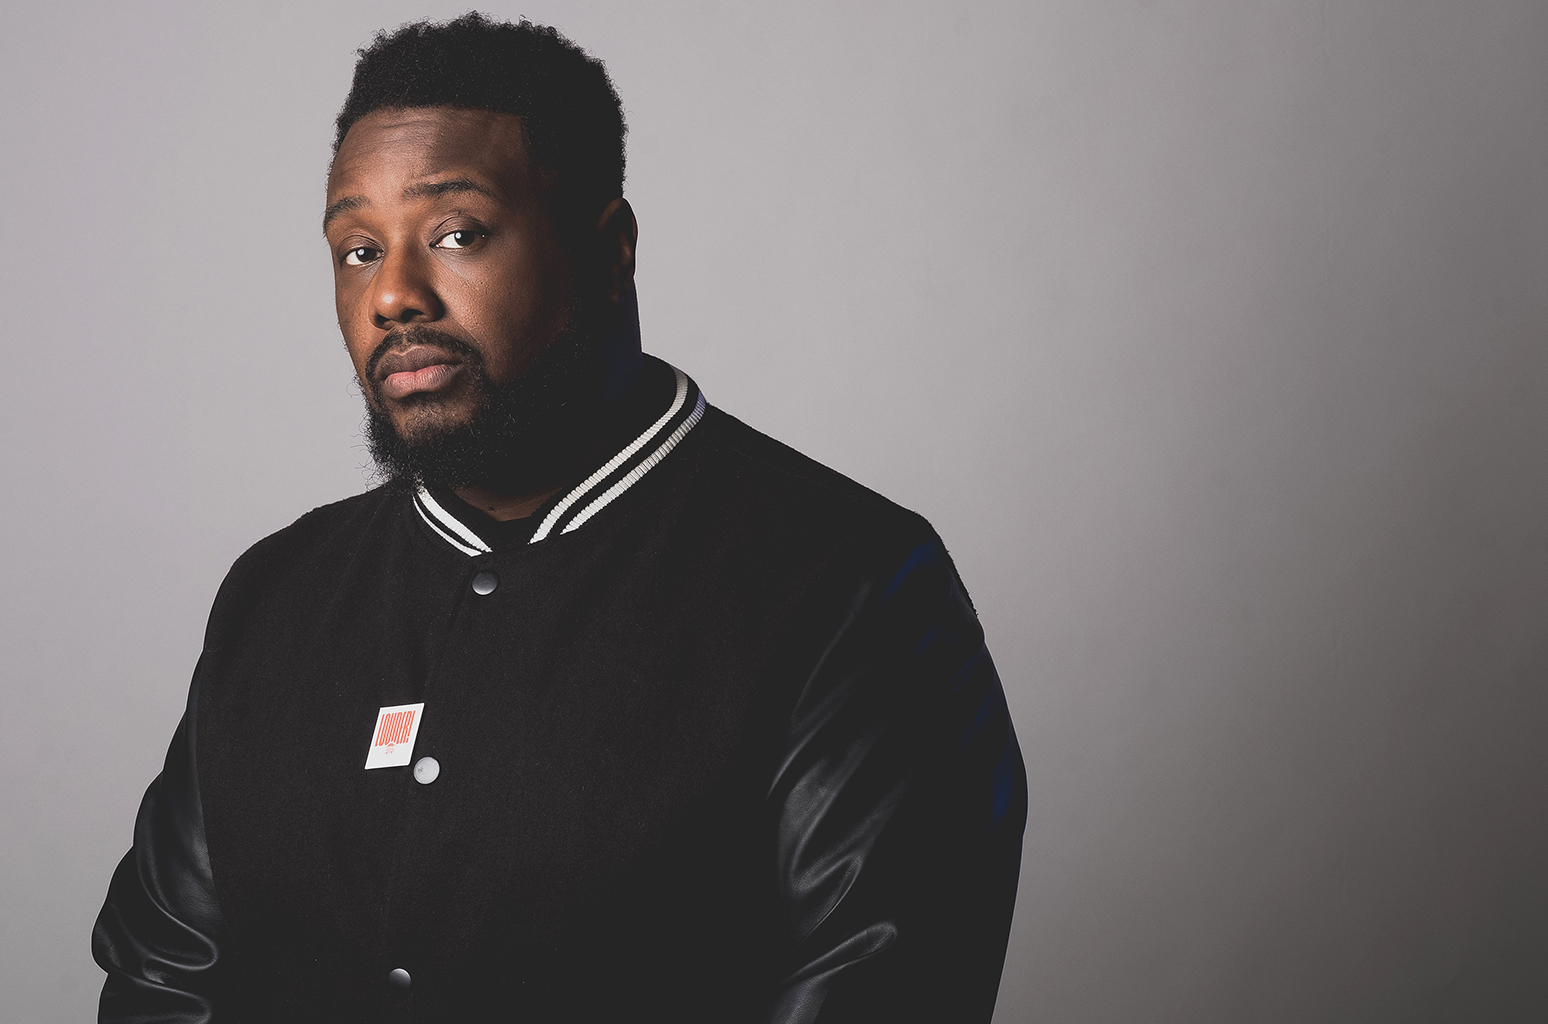 phonte press photo.jpg